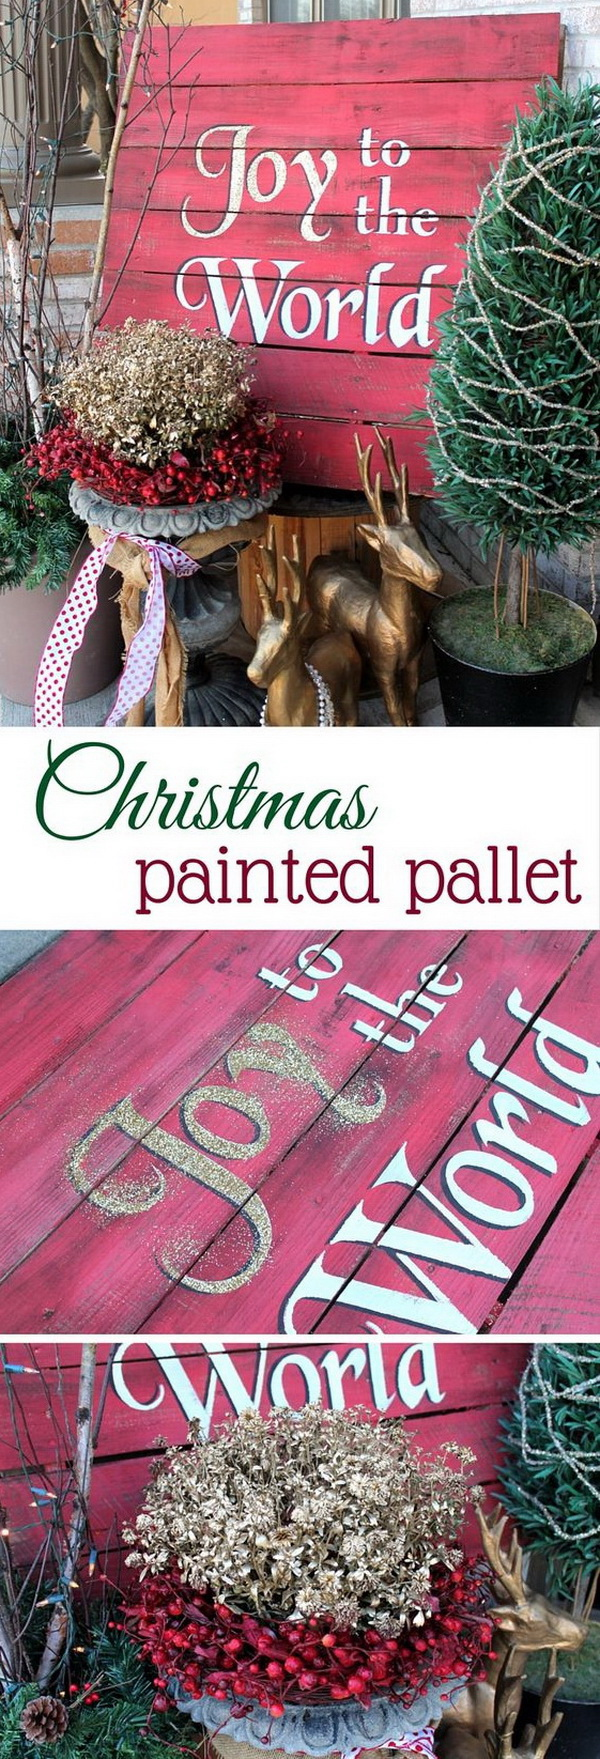 Joy to the World Christmas Pallet Welcome Sign. A great welcome sign to display on your front porch during this holiday season! Easy and quick to make with a bit of painting and woodworking skills.